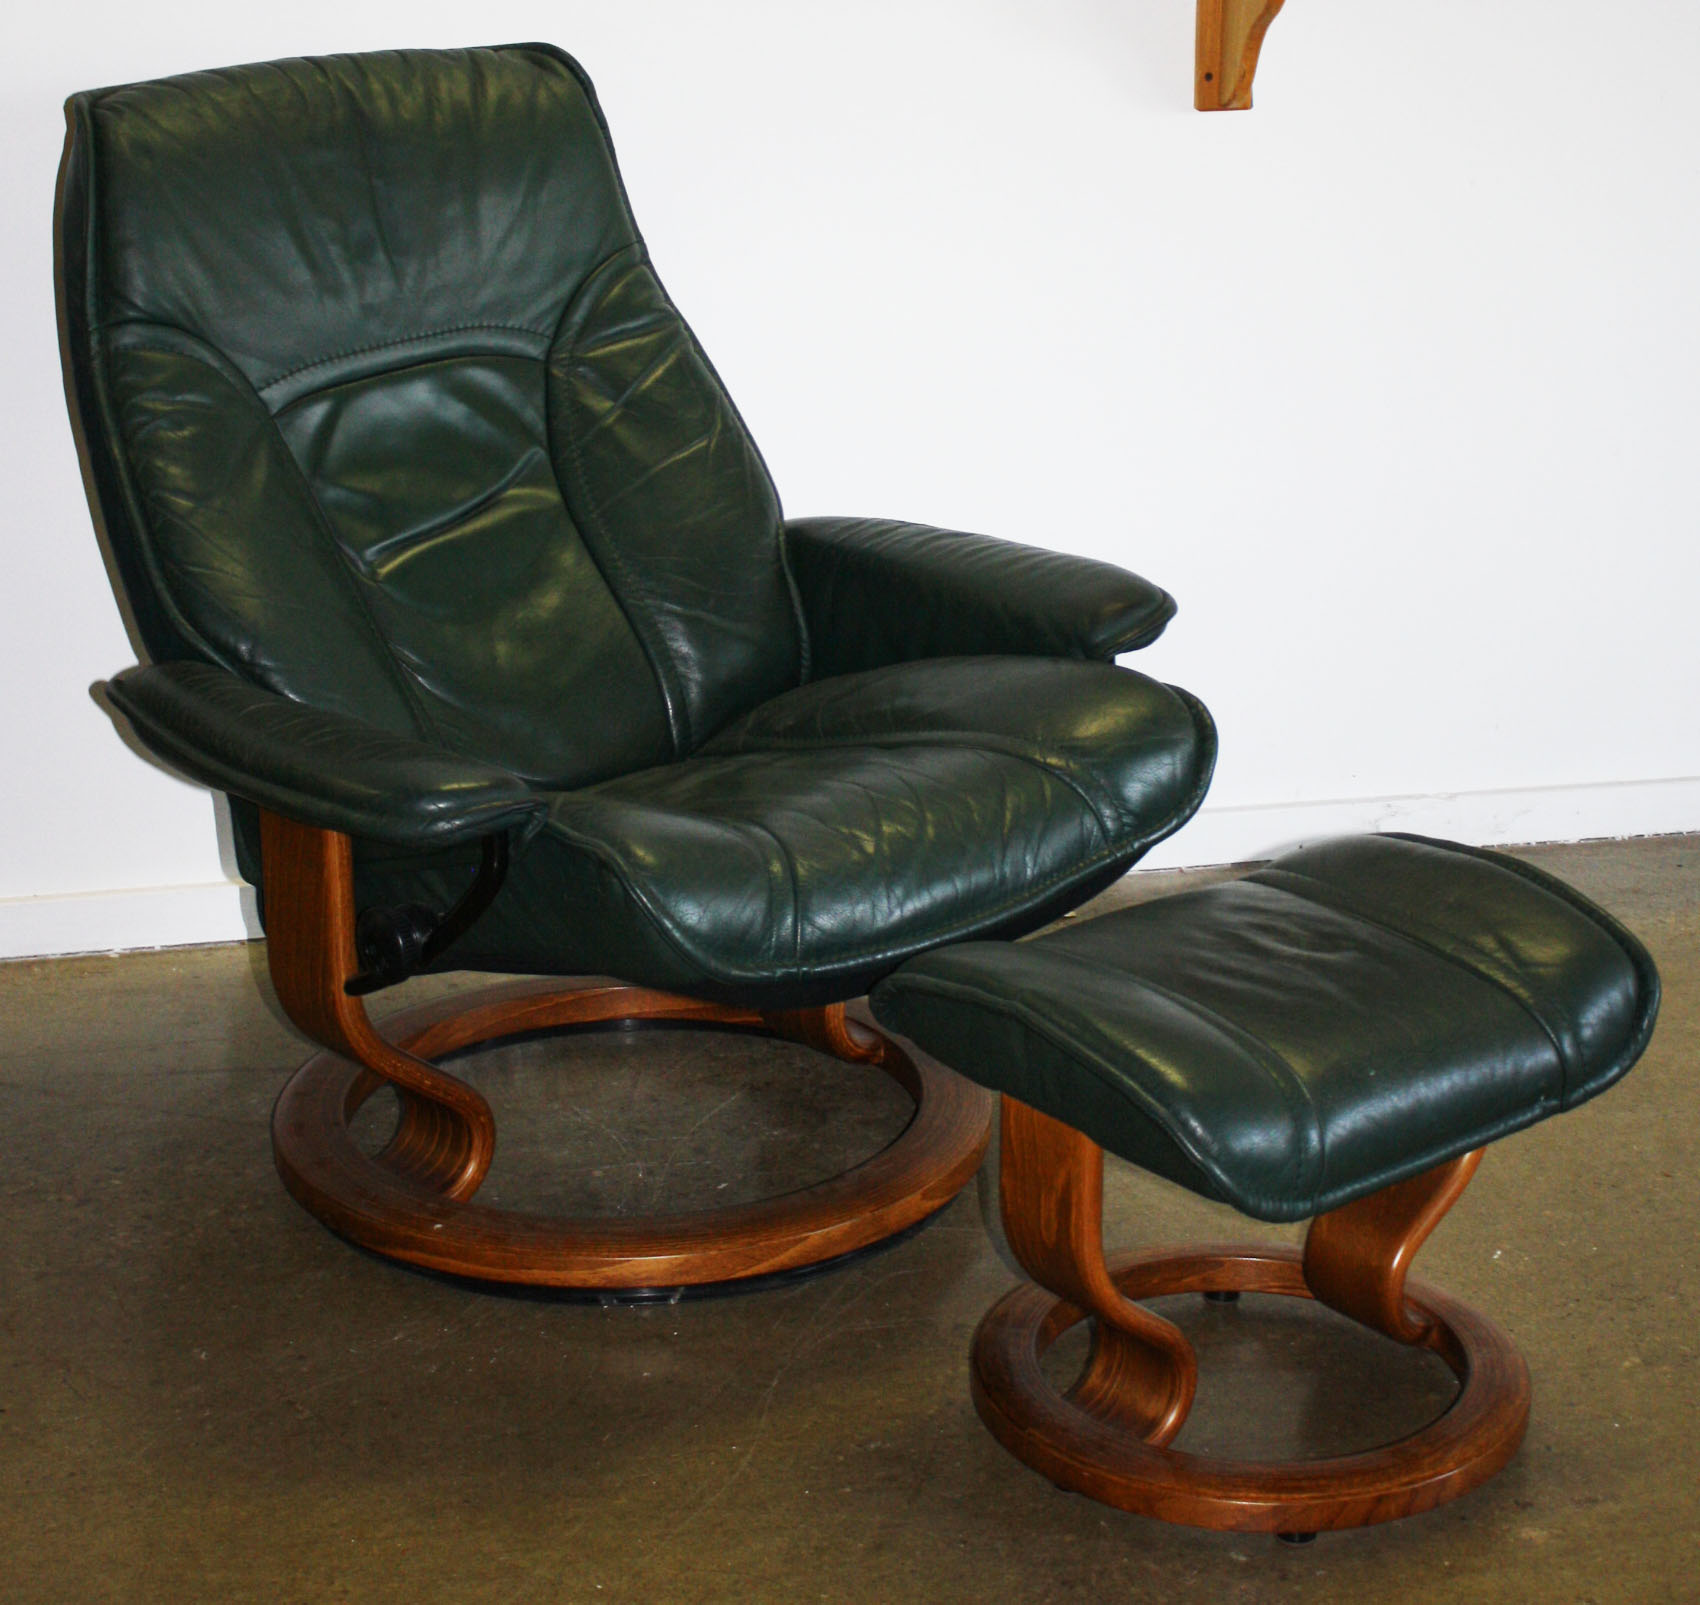 Ekornes Stressless Lounge Chair.JPG